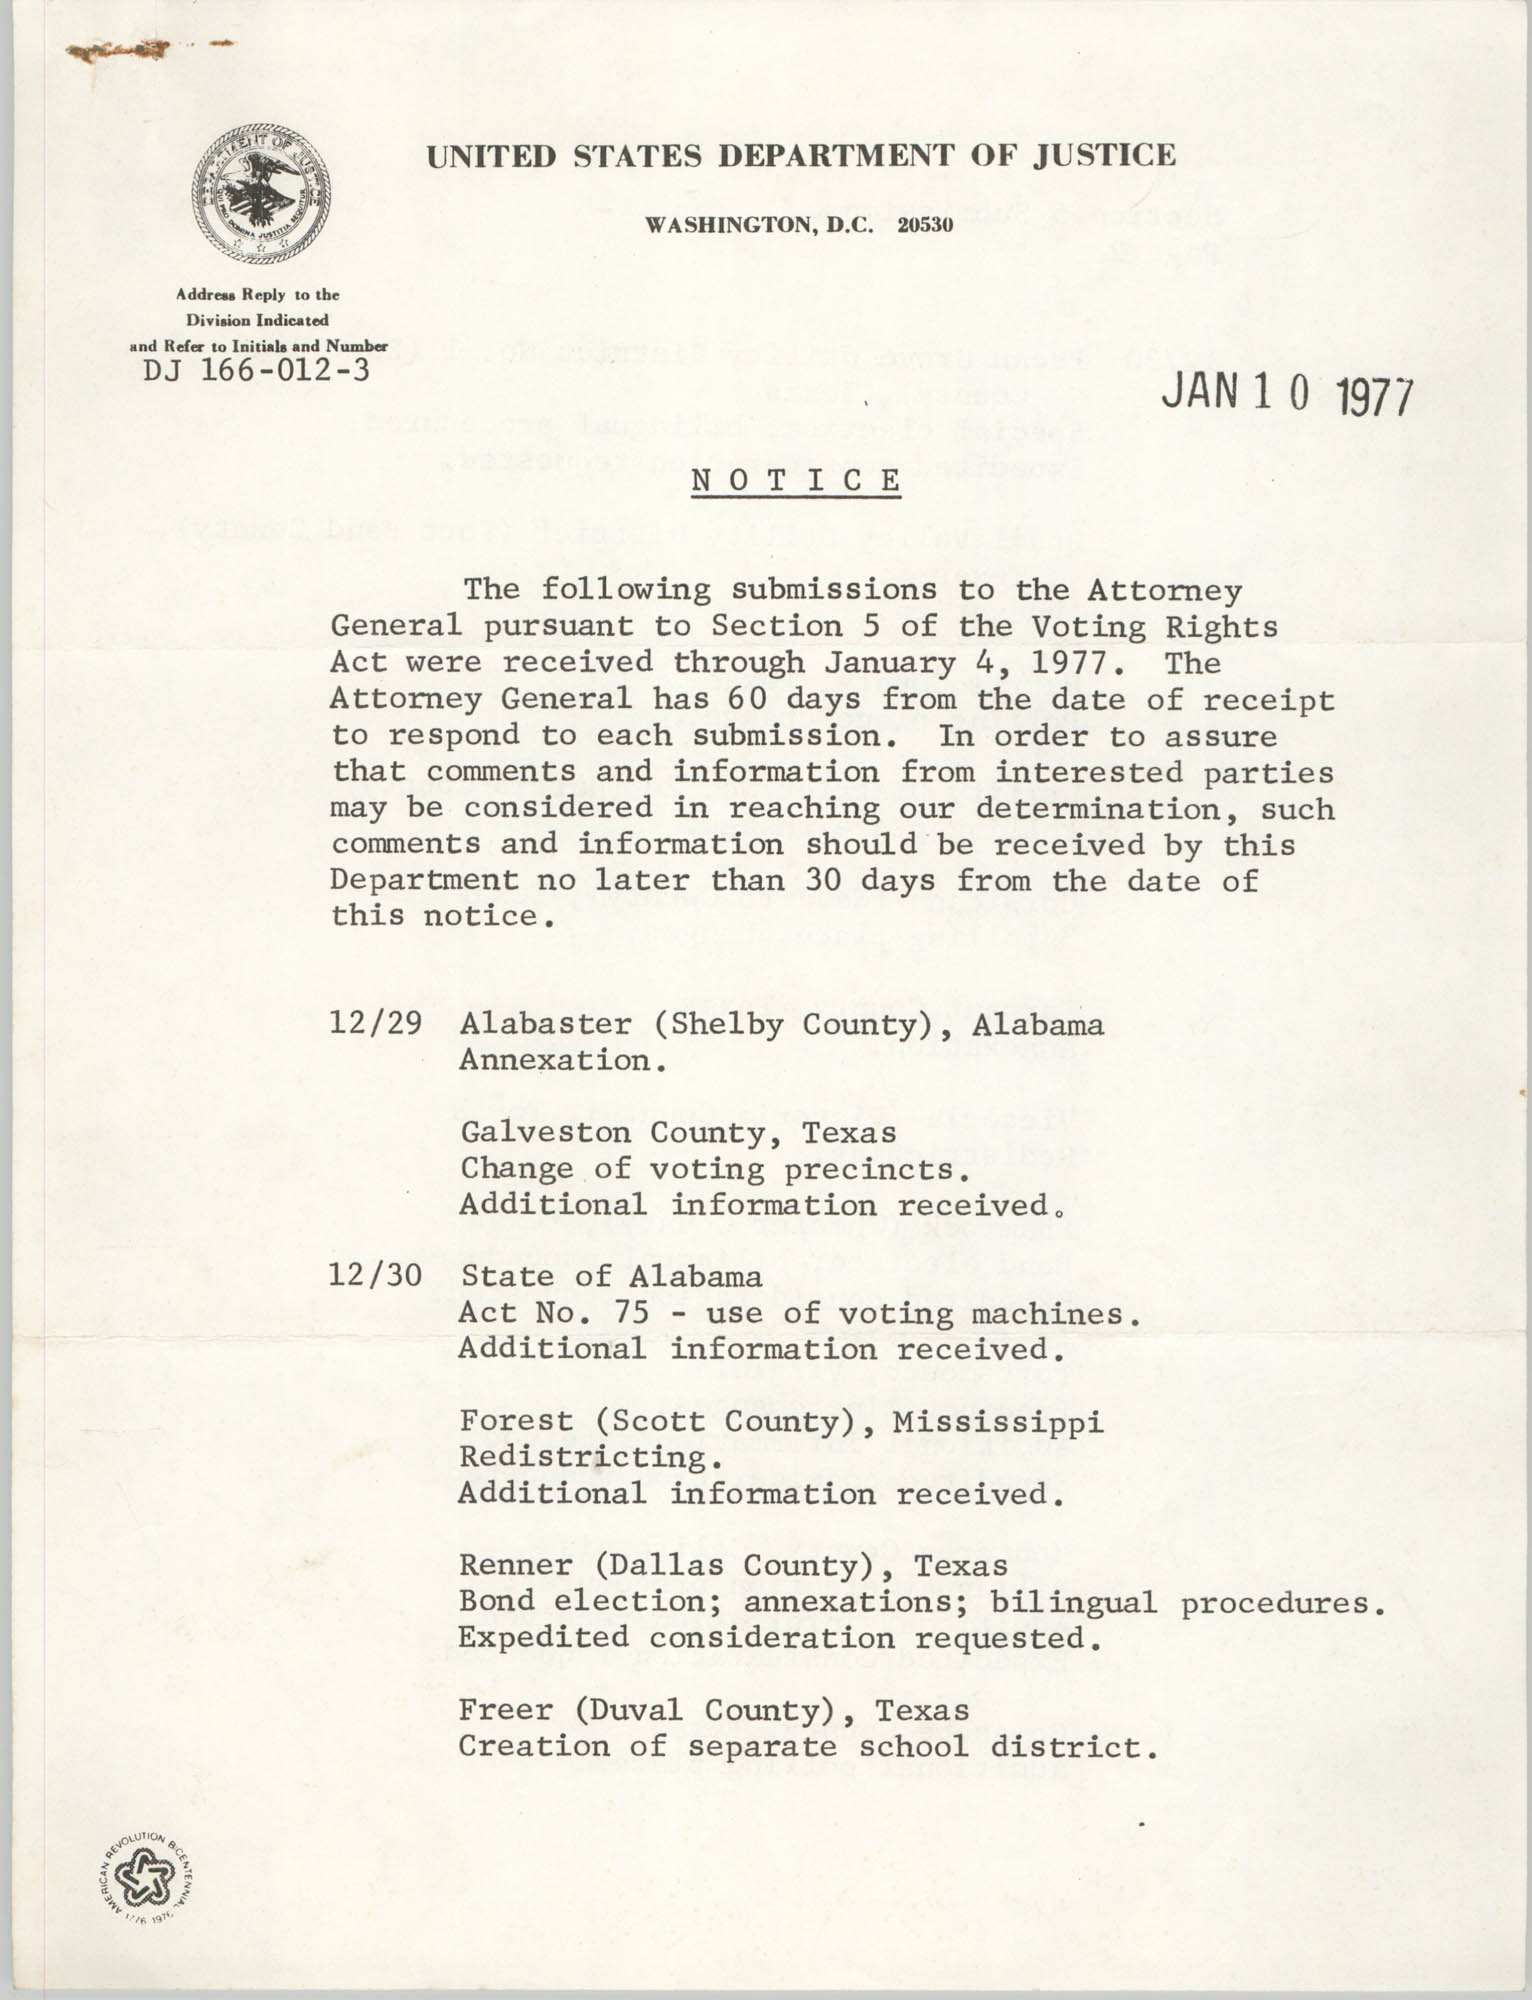 United States Department of Justice Notice, January 10, 1977